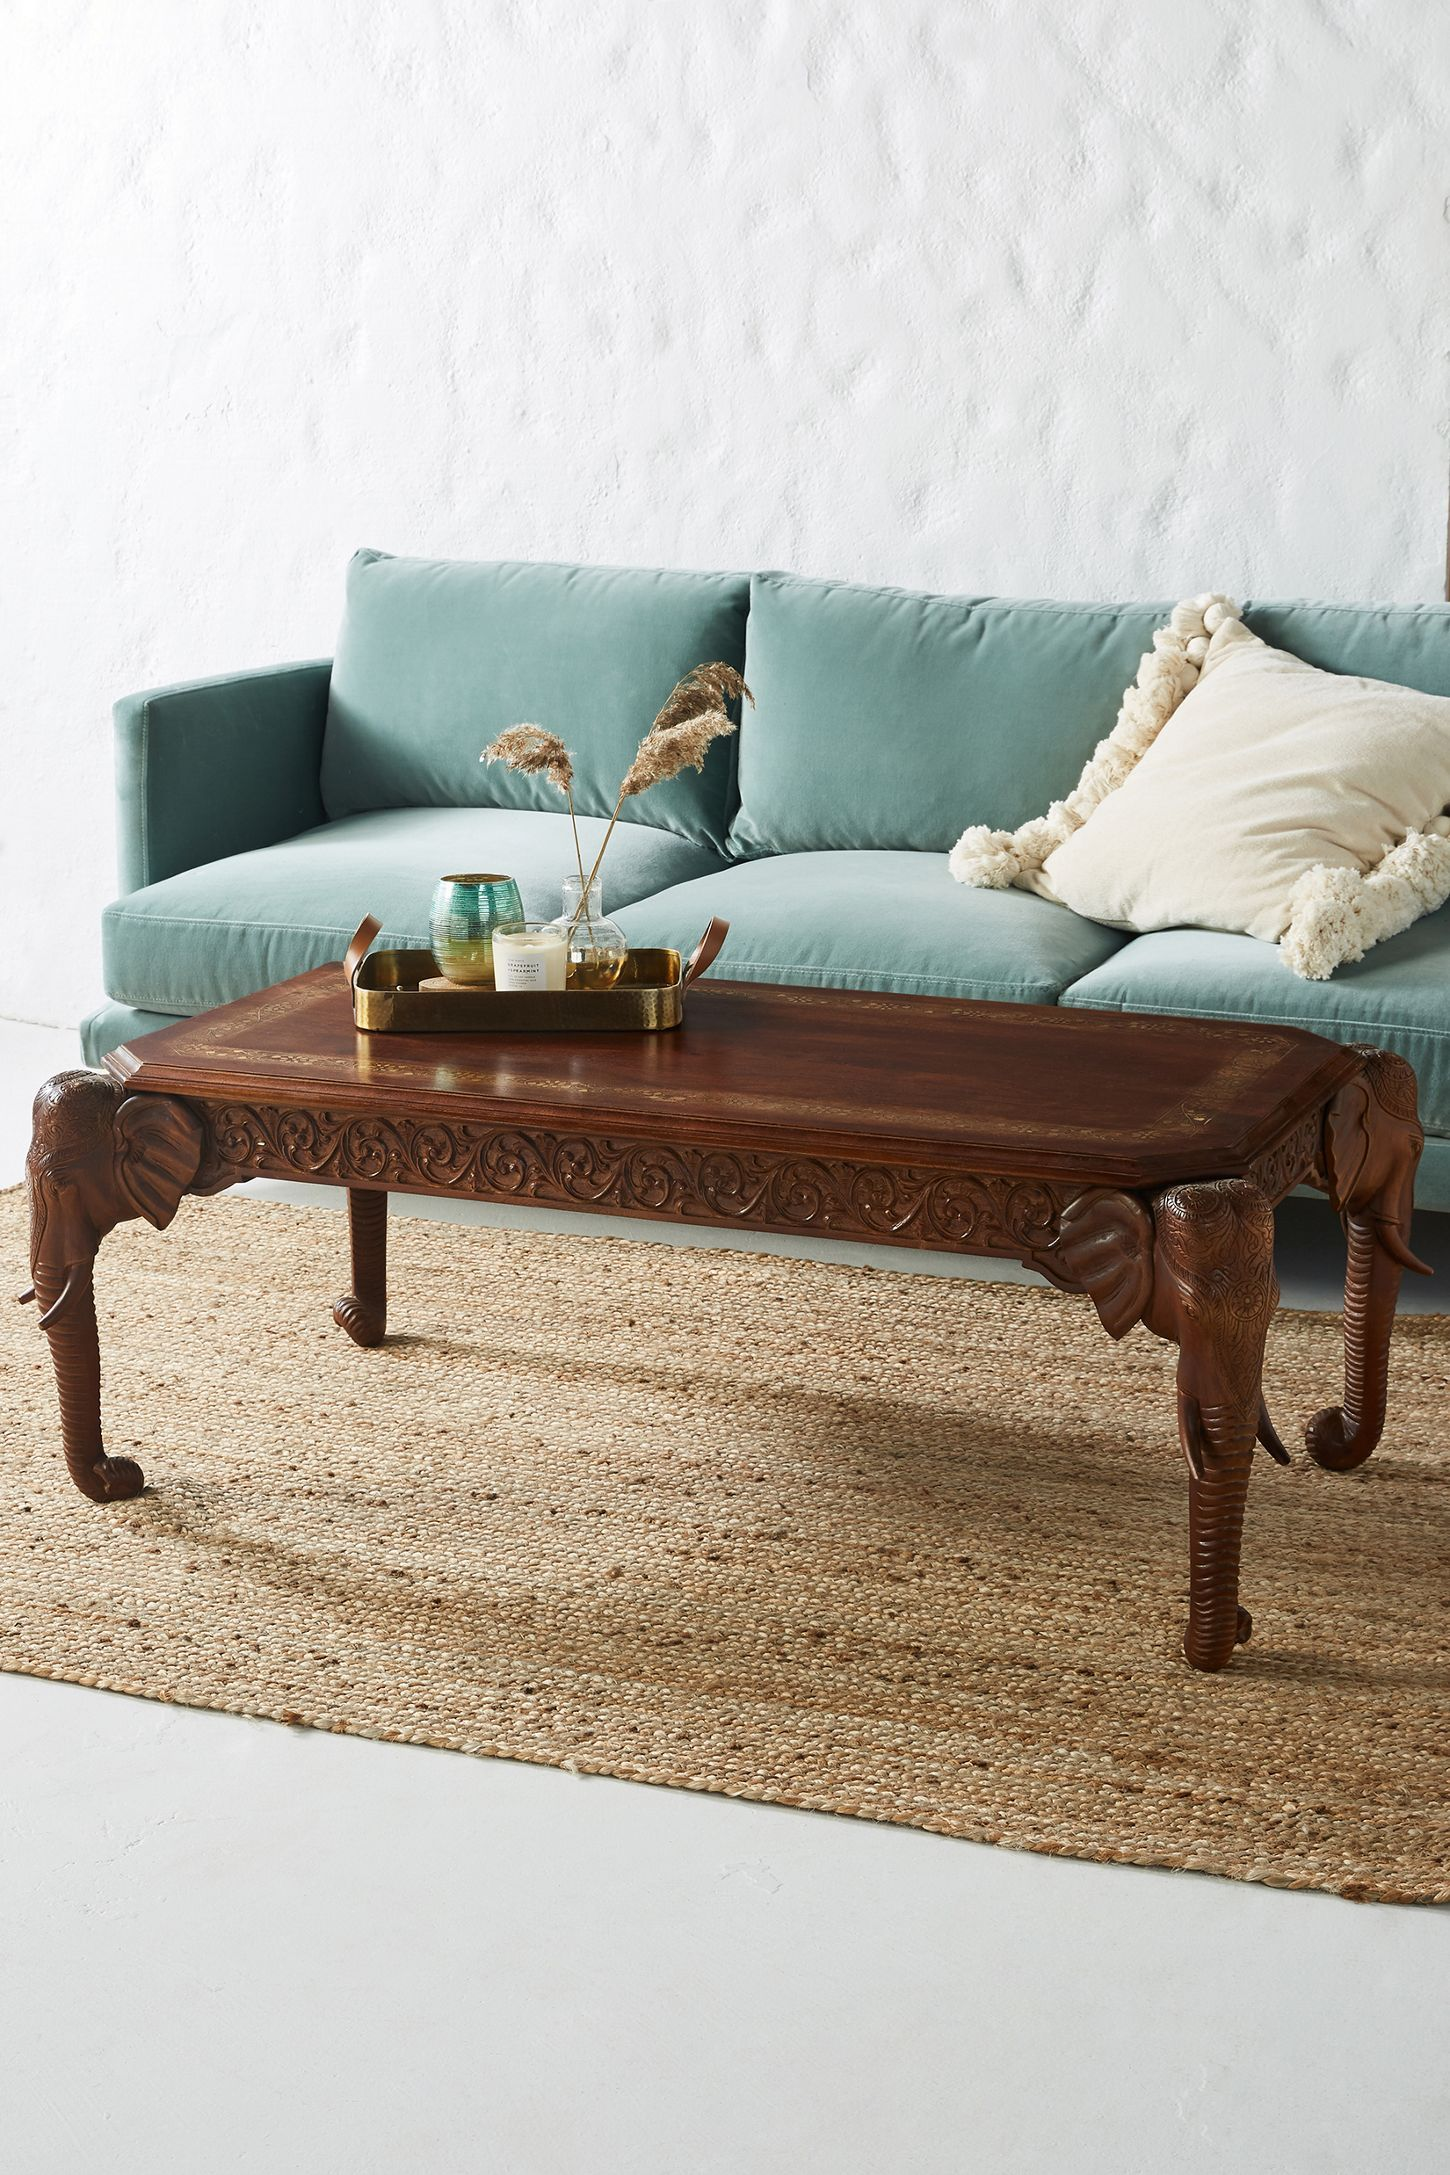 Elephant coffee table in 2020 unique coffee table